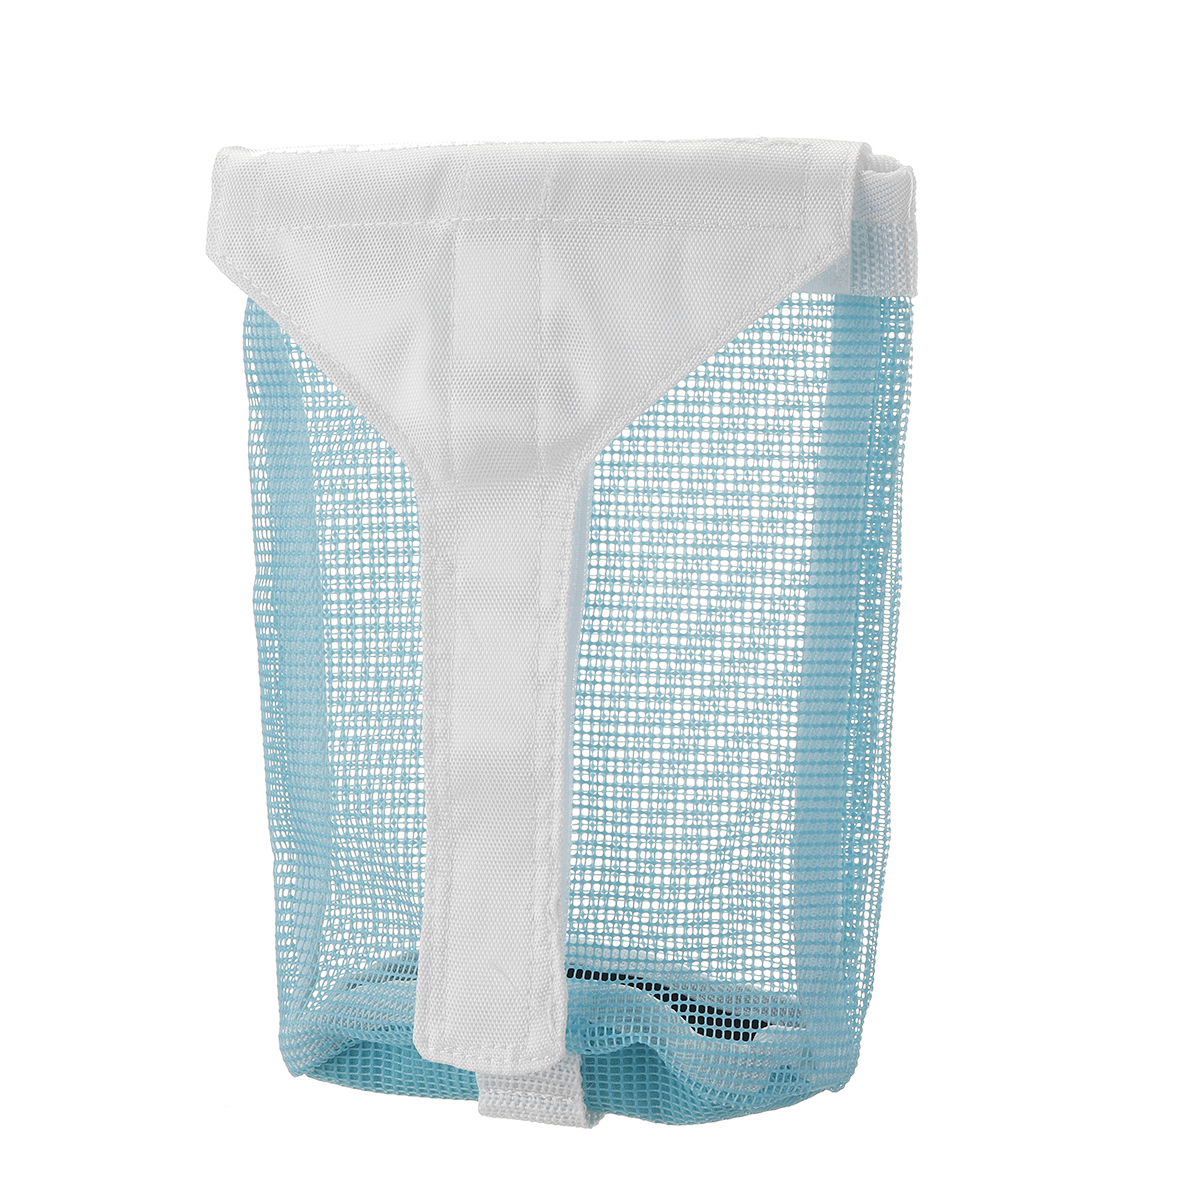 Diving Reel Bolt Snap & SMB Safety Marker Buoy Mesh Gear Bag Equipment Holder Carry Pouch